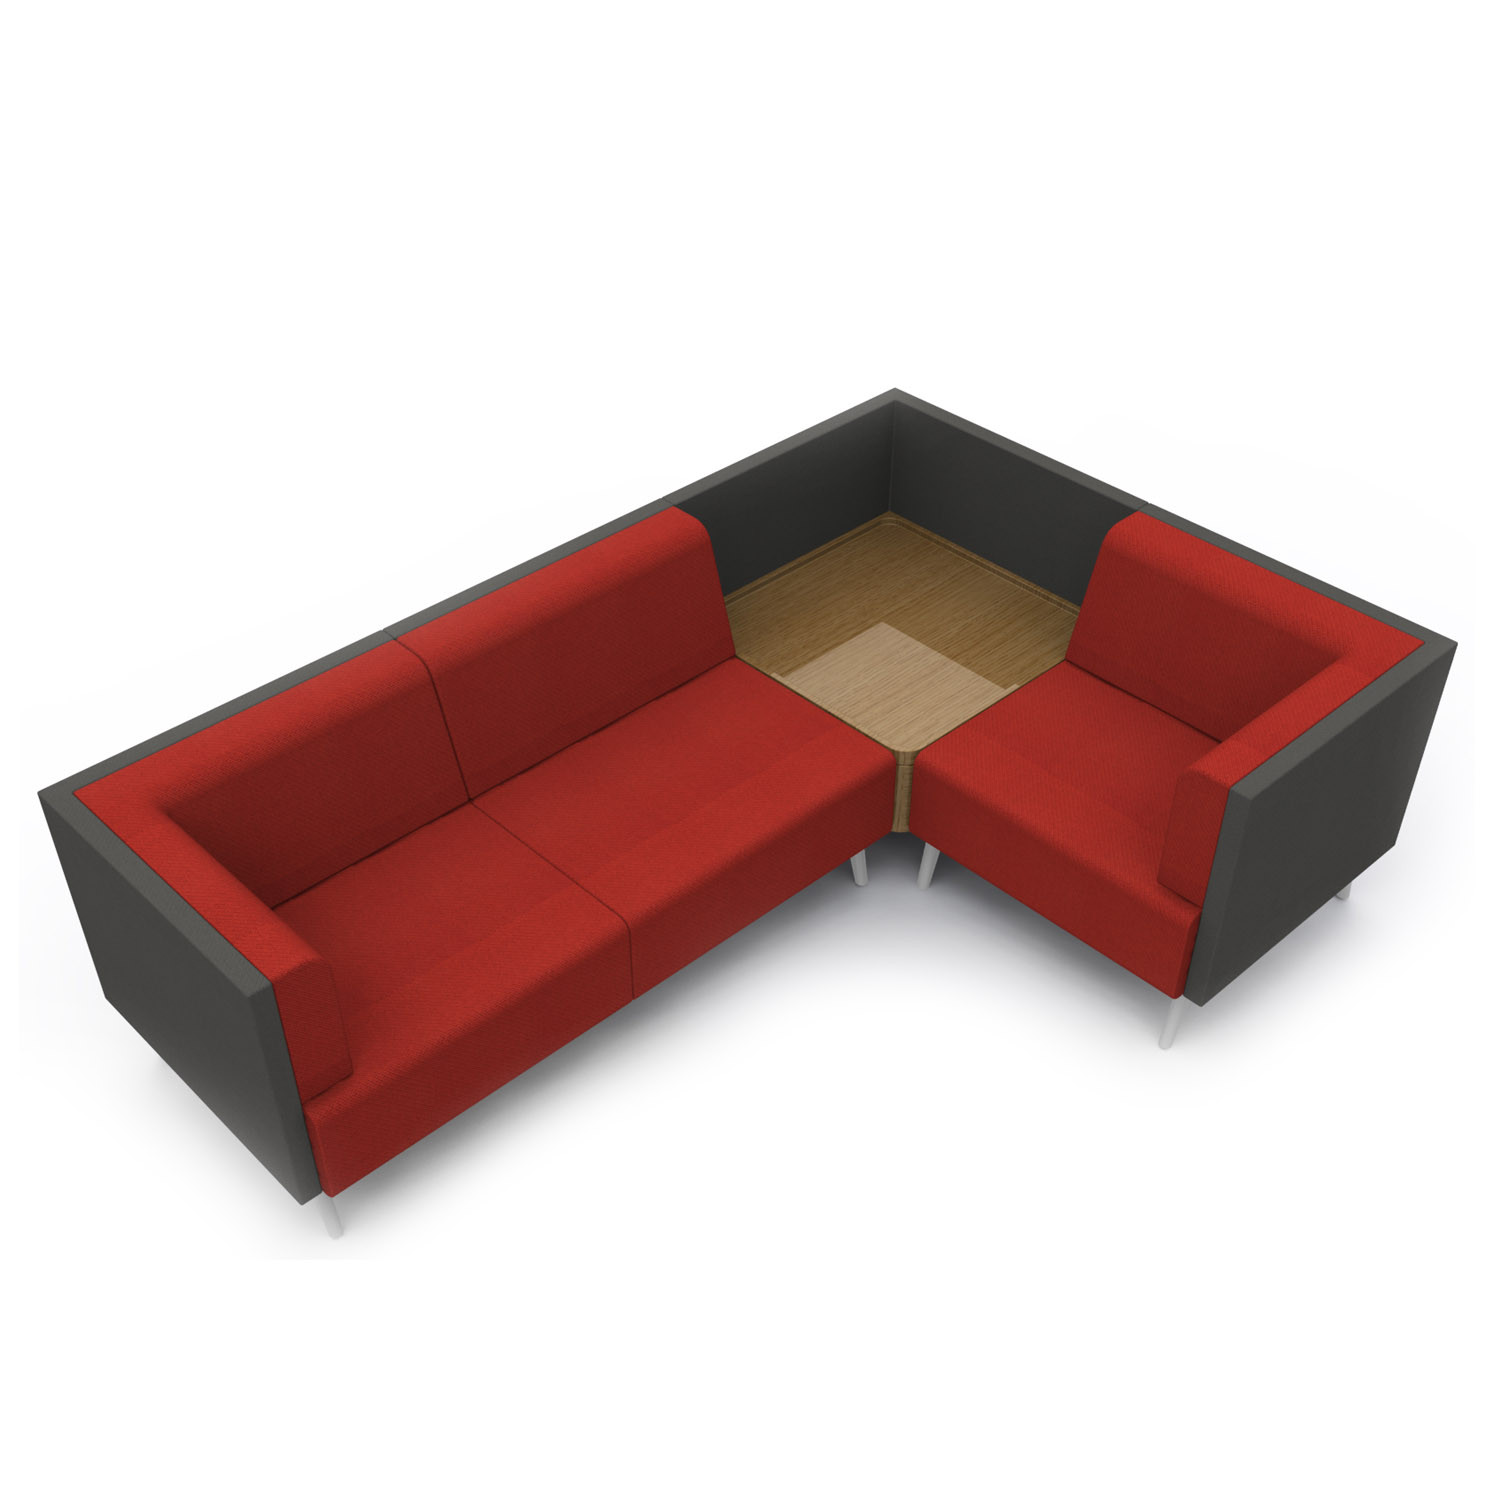 Tryst L-Shaped Sofa with integrated table